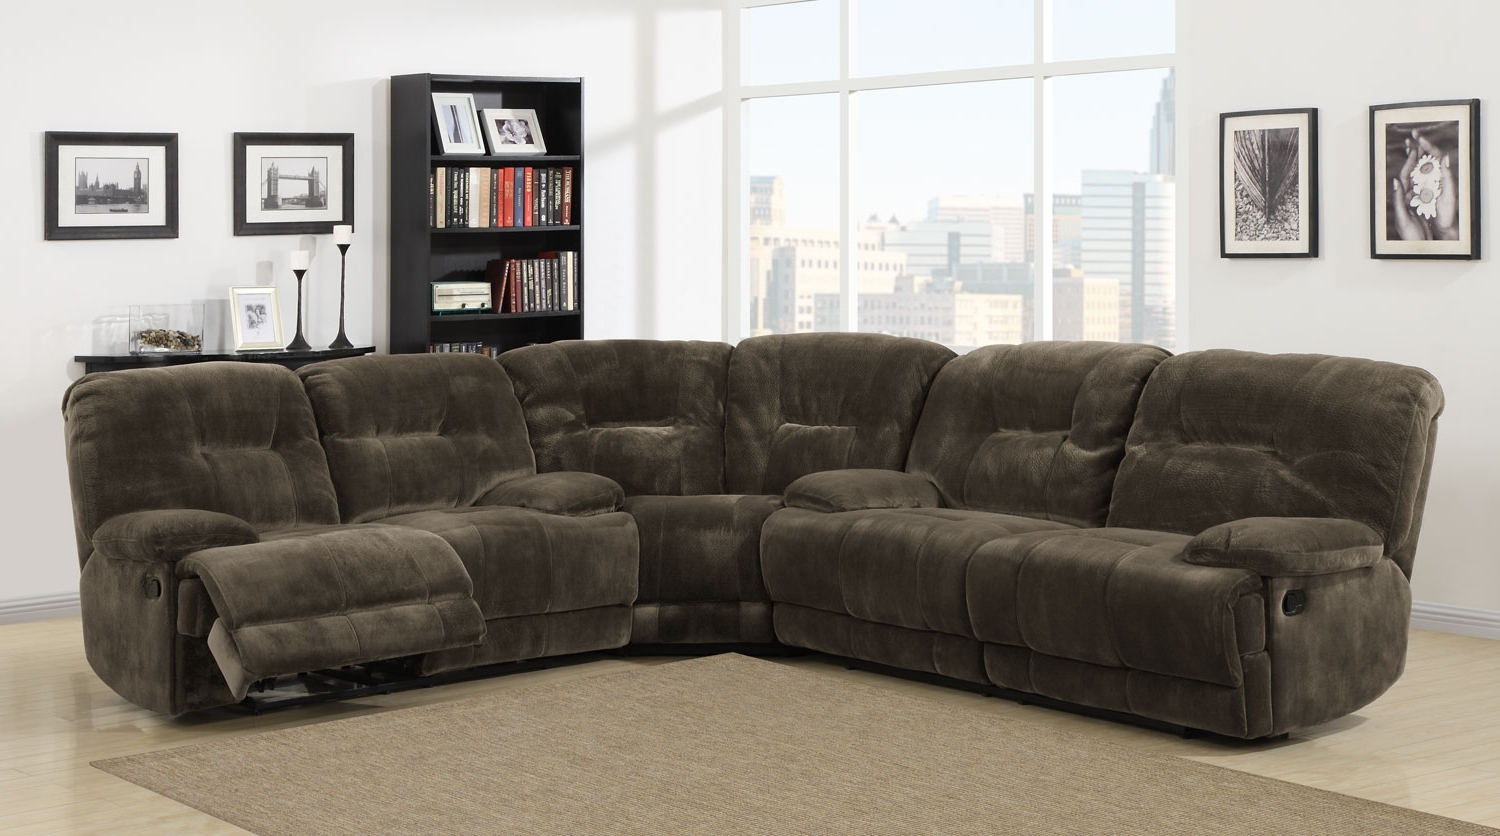 Homelegance Geoffrey Reclining Sectional Sofa Set – Chocolate Intended For Well Known Plush Sectional Sofas (View 3 of 20)